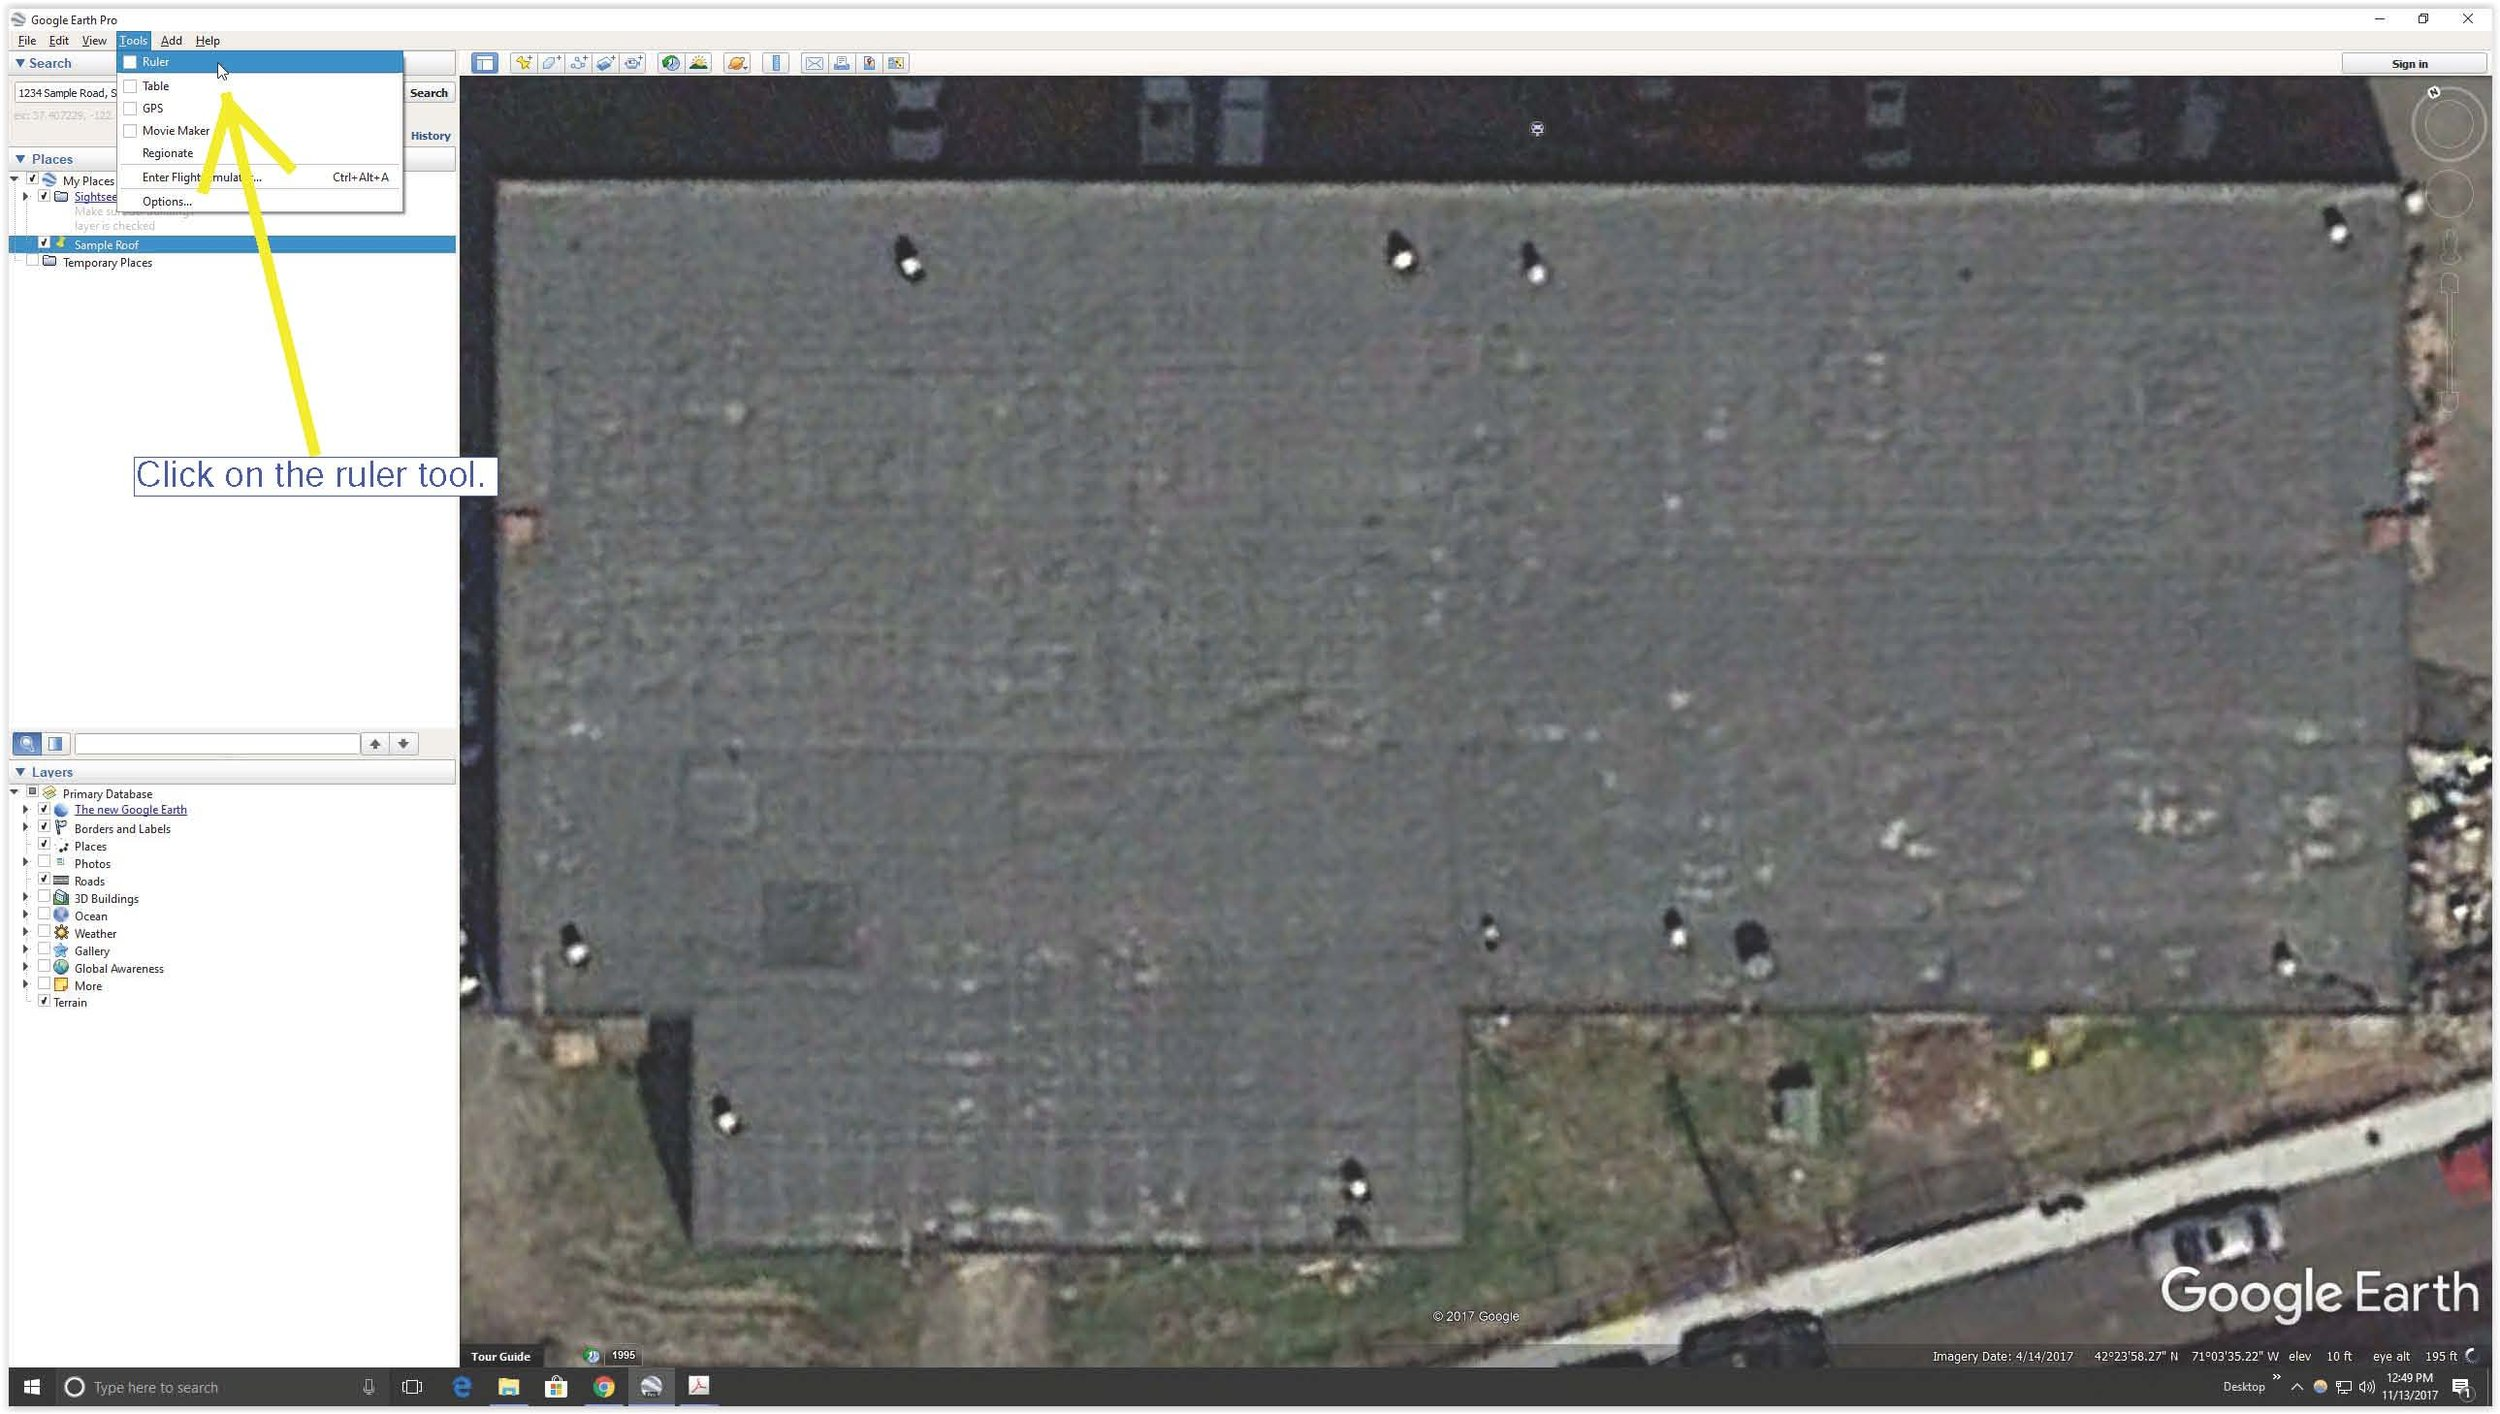 Screen Shot Google Earth Ruler Tool 1.jpg